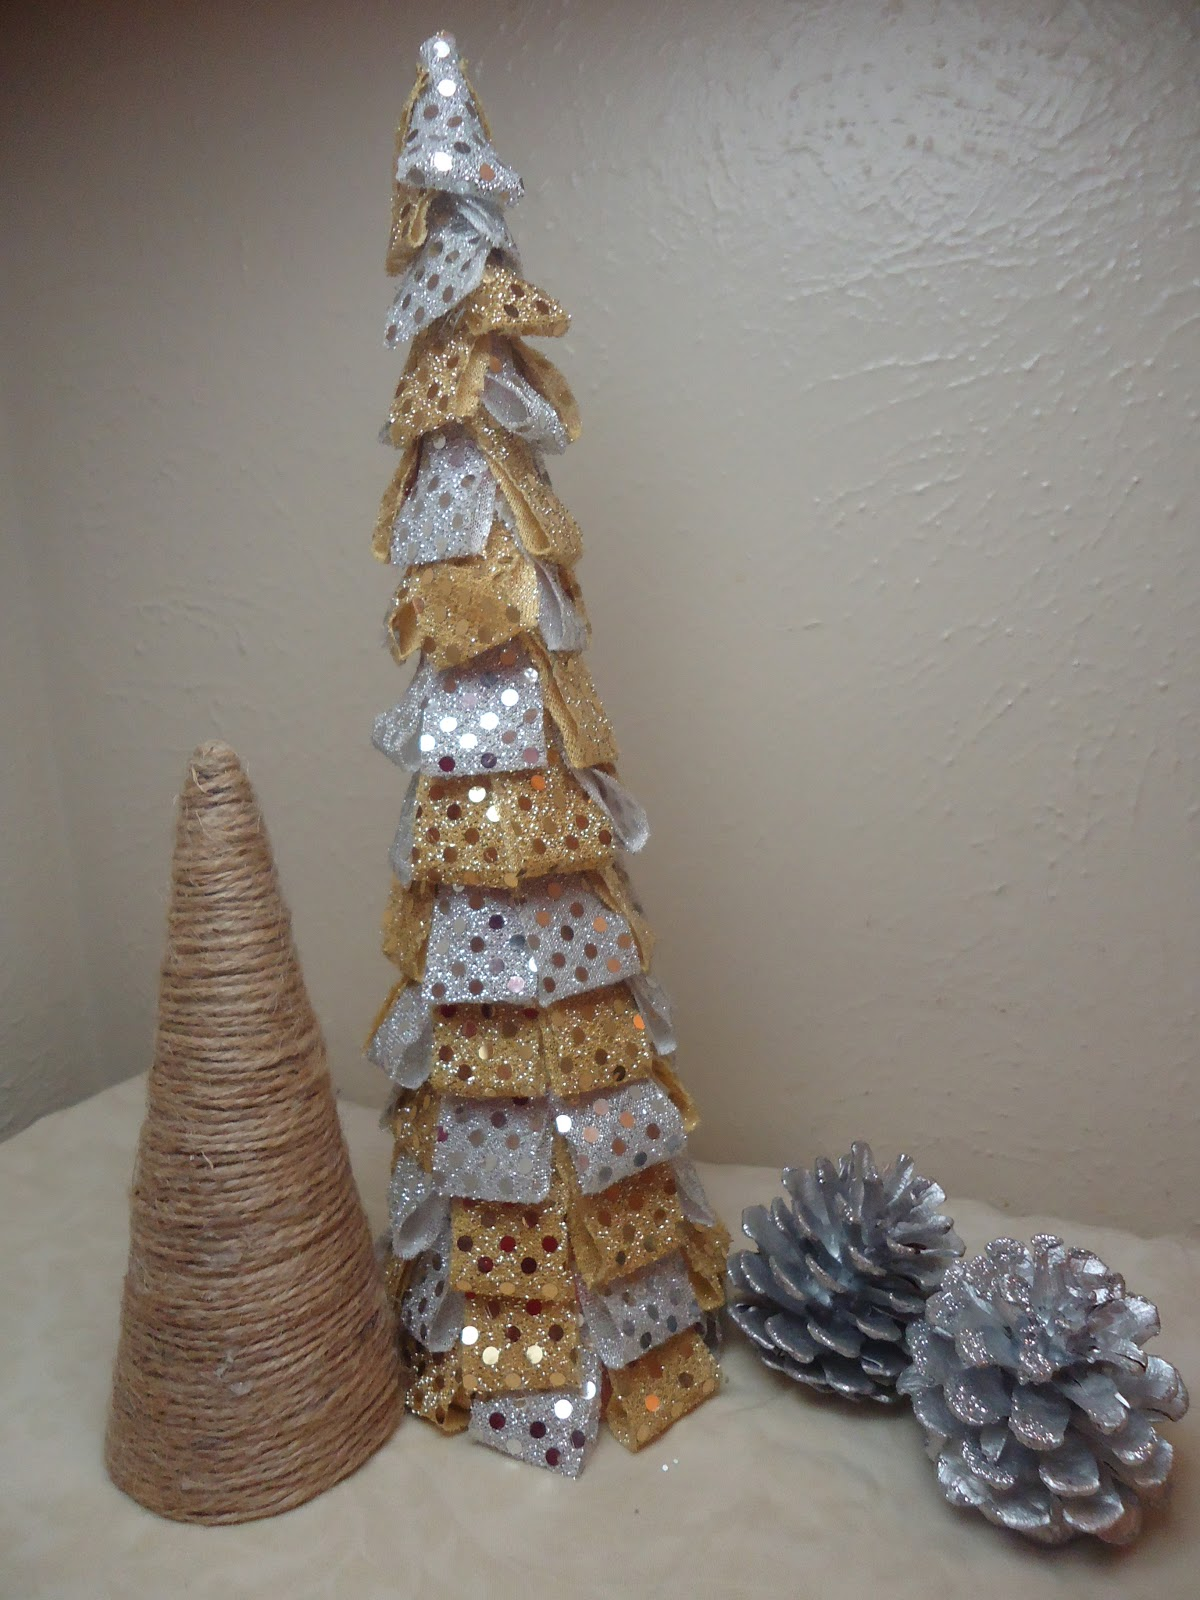 Christmas Decorations Cone Trees : Frugal home design diy cone shaped christmas trees